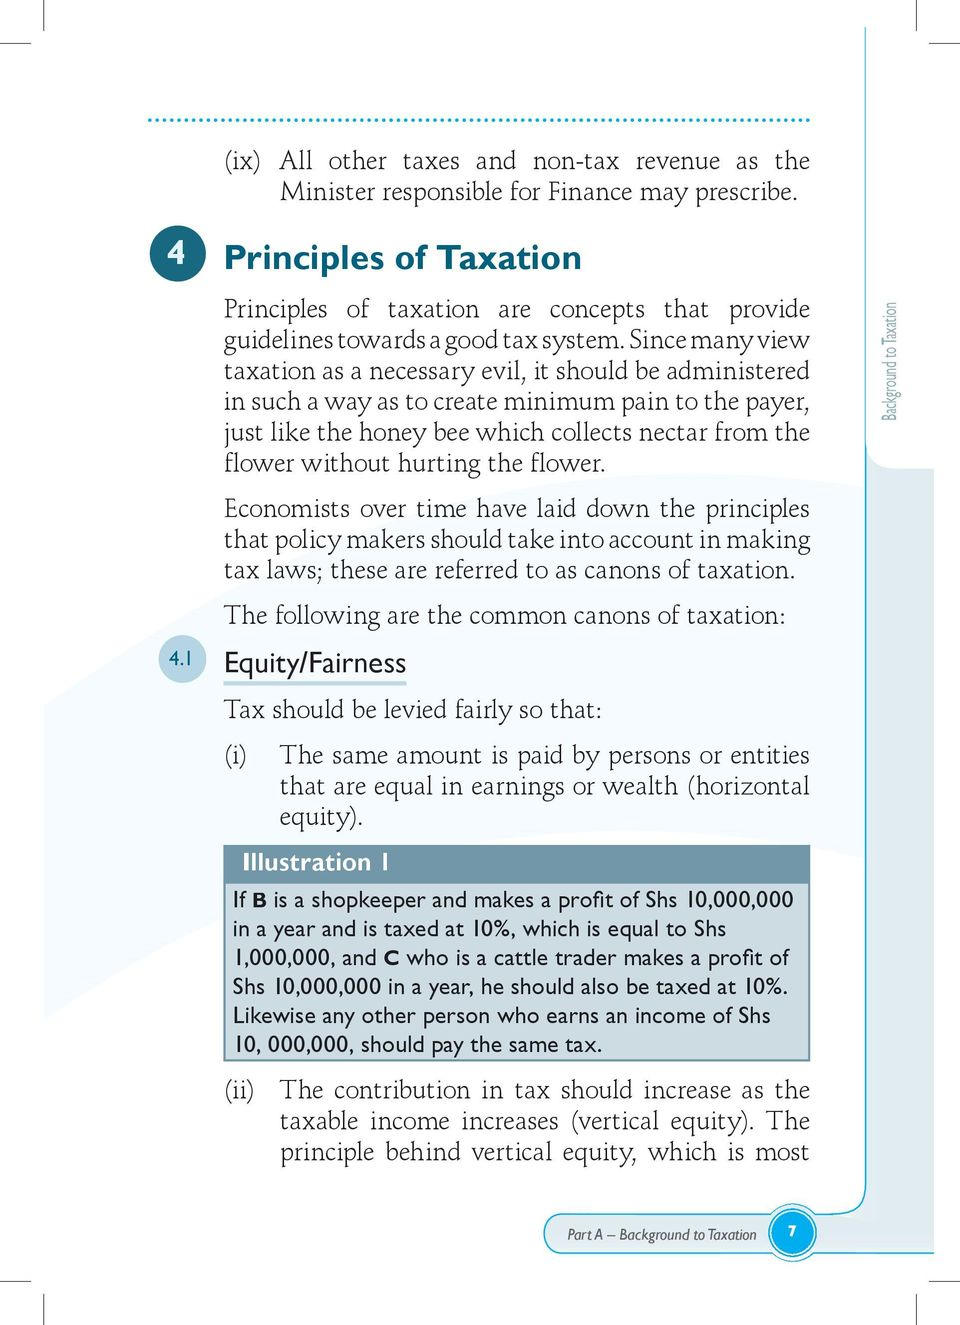 Since many view taxation as a necessary evil, it should be administered in such a way as to create minimum pain to the payer, just like the honey bee which collects nectar from the flower without